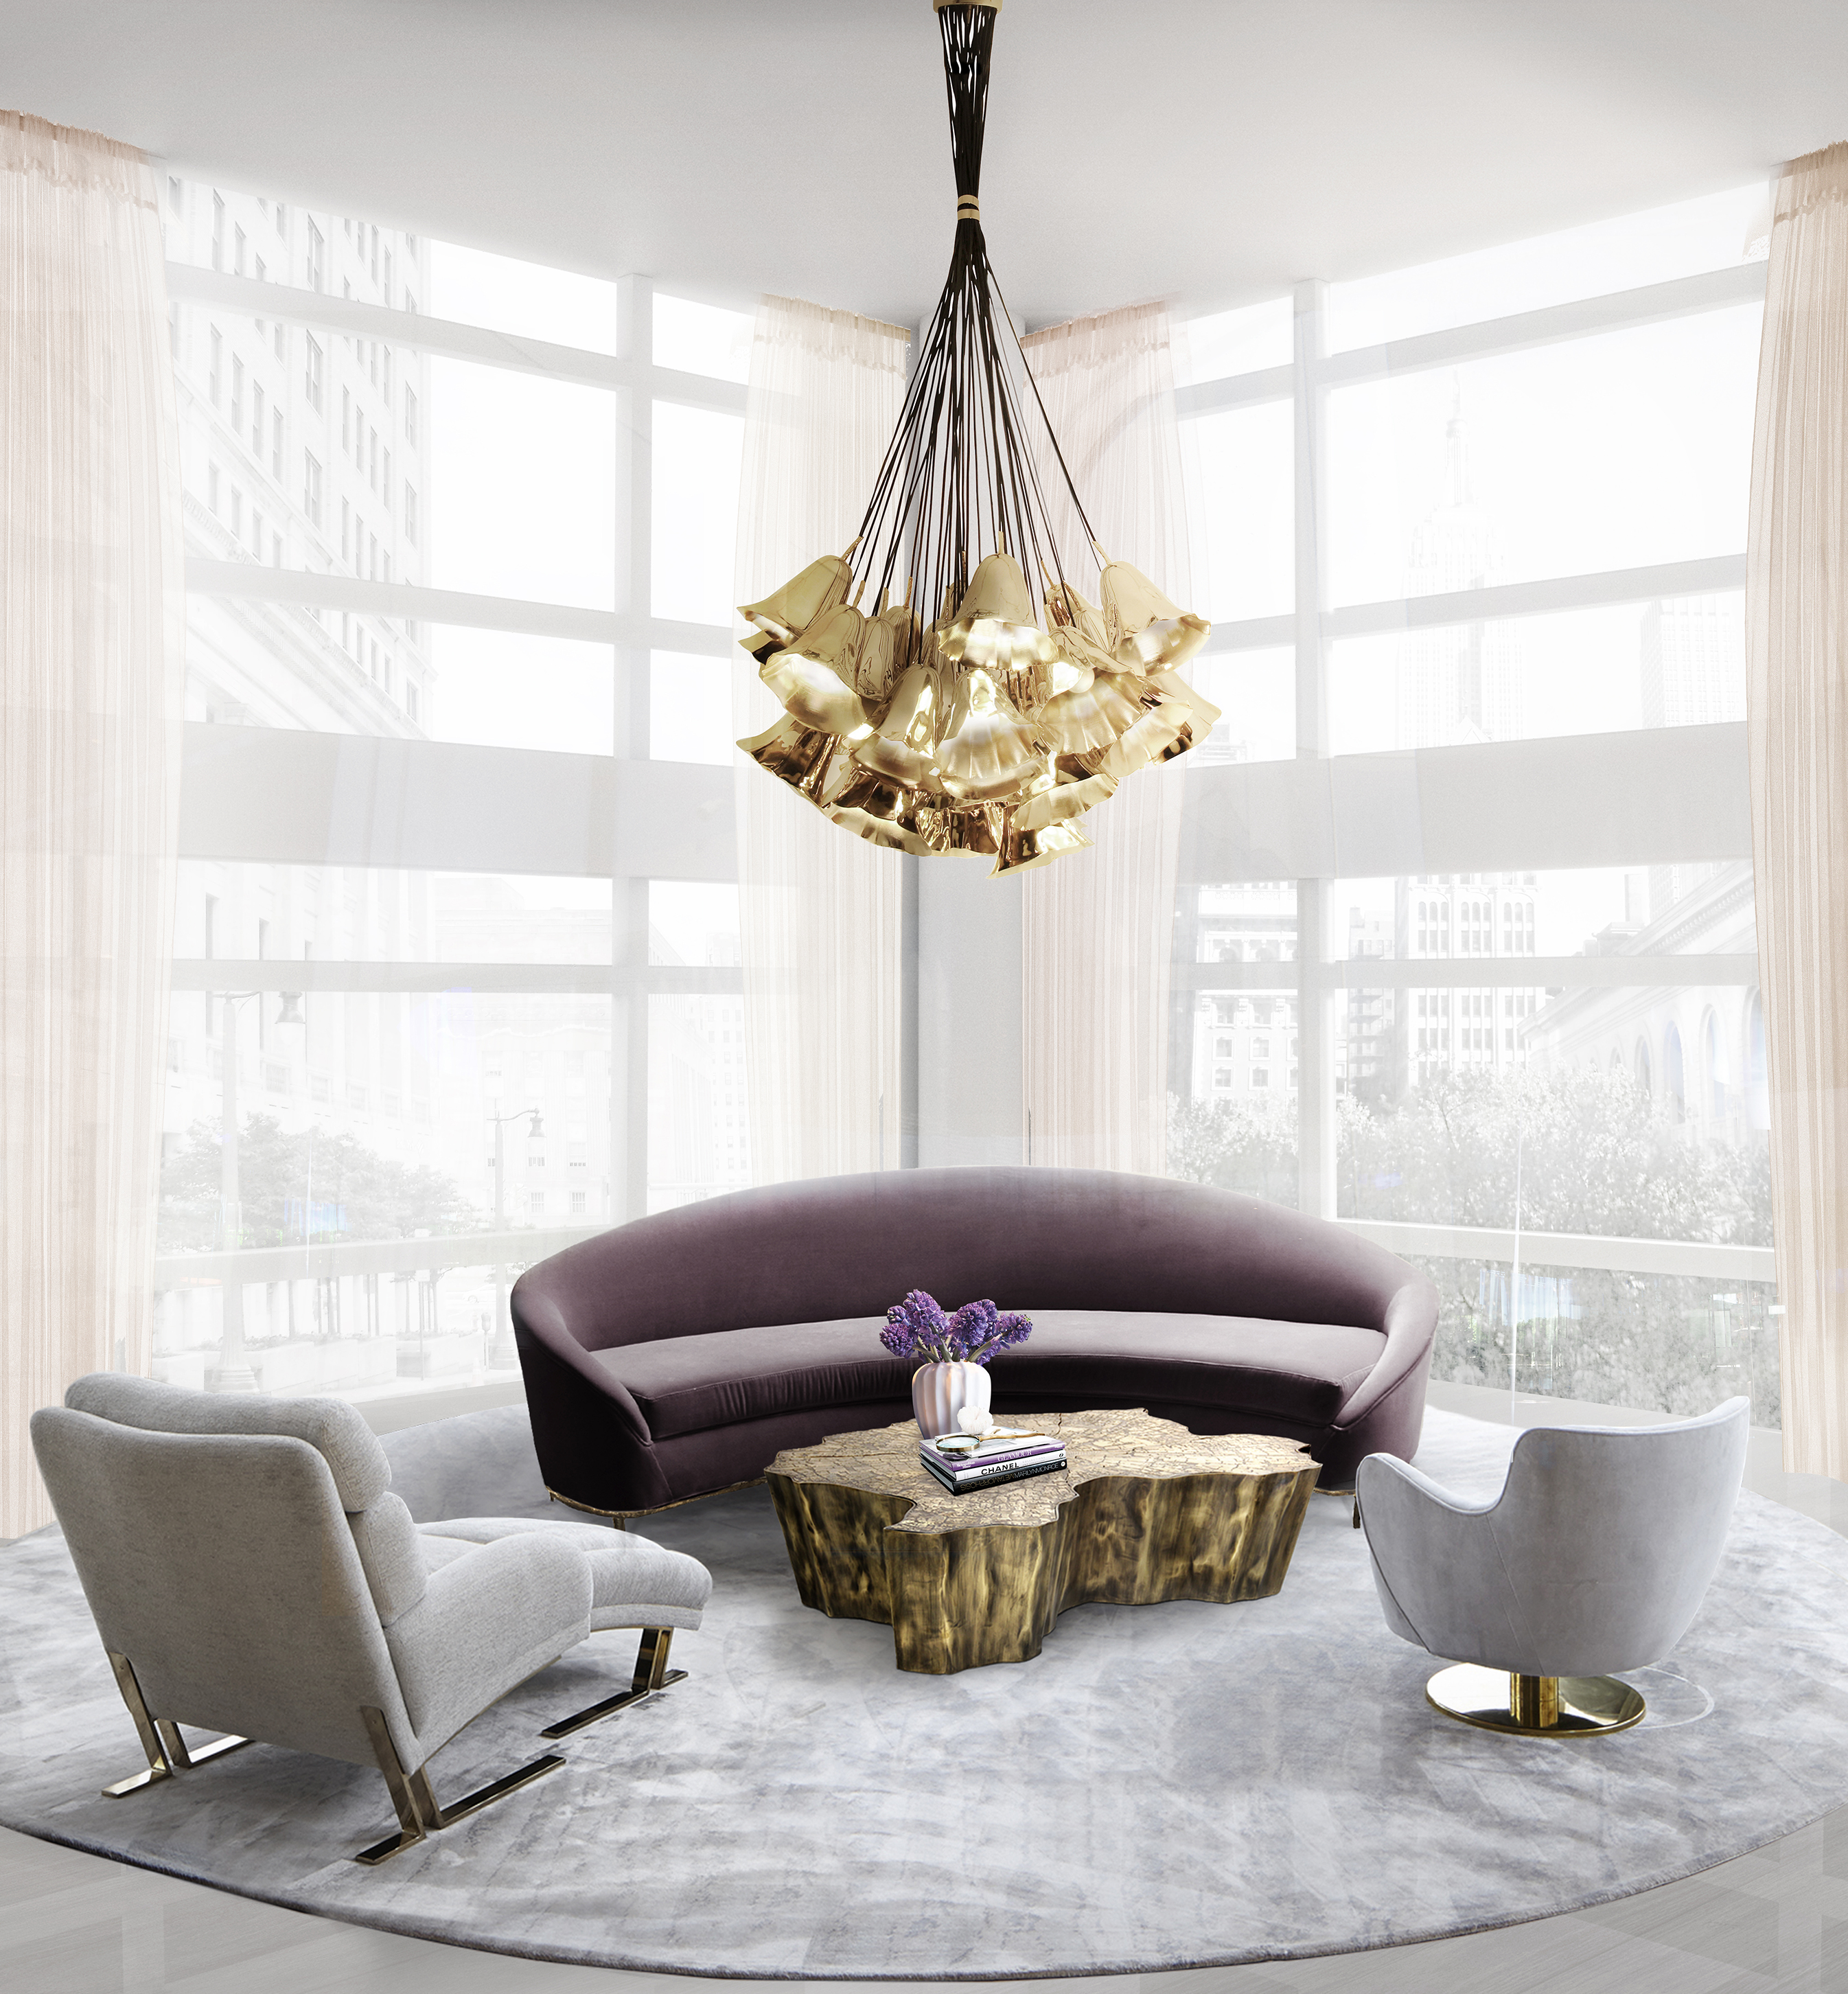 koket vamp sofa gia chandelier living room design 8 decorating ideas to improve your living - Chandelier Living Room Ideas